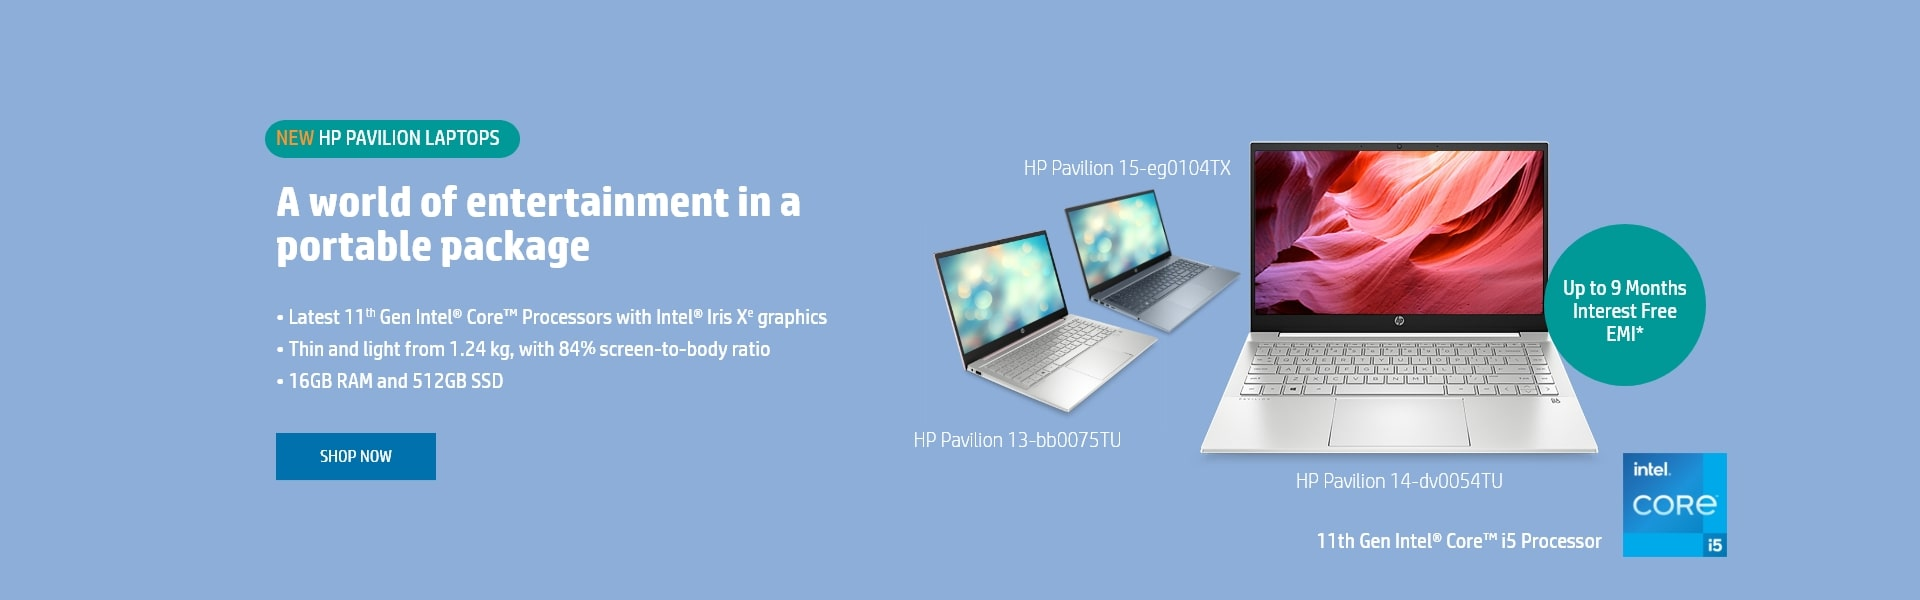 Hp Pavilion Family Laptops